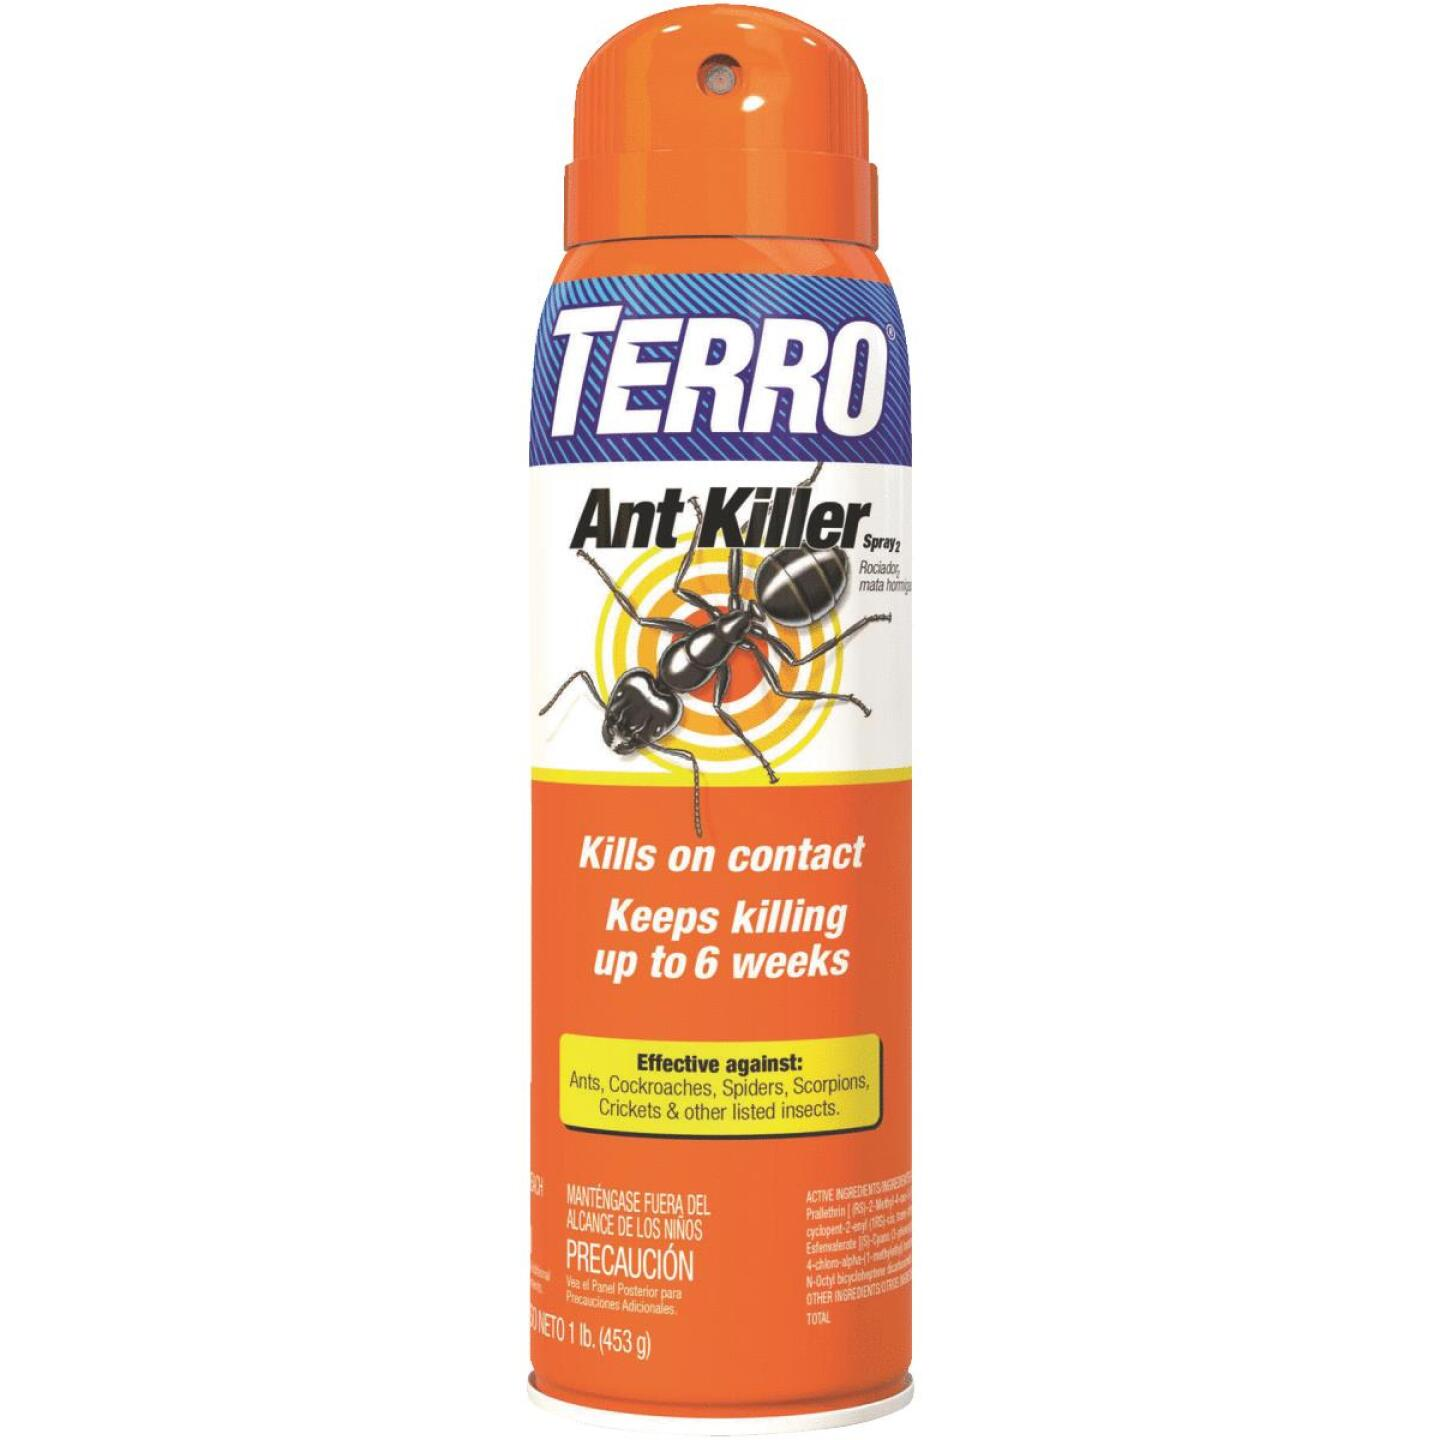 Terro 16 Oz. Aerosol Spray Ant & Roach Killer Image 1